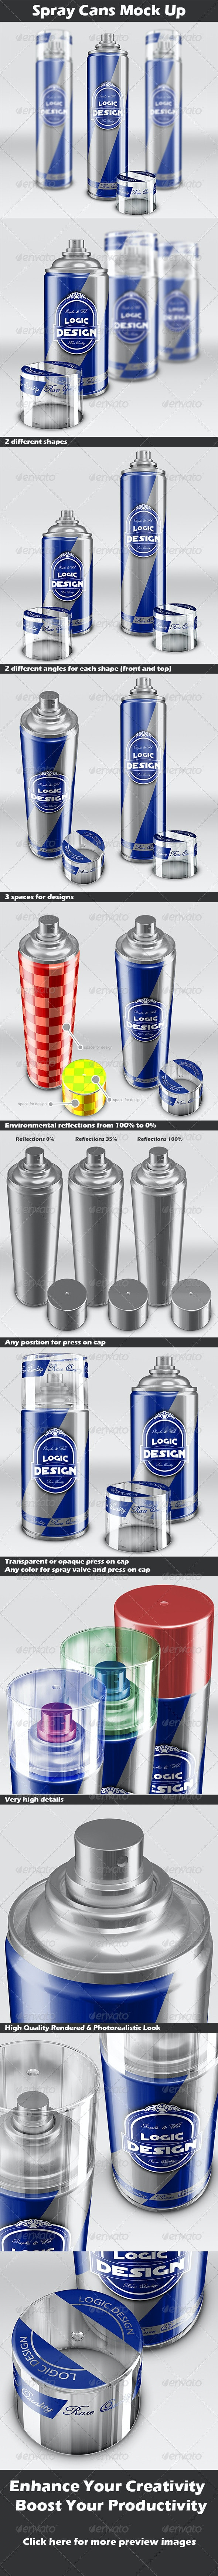 Spray Cans Mock Up - Miscellaneous Product Mock-Ups